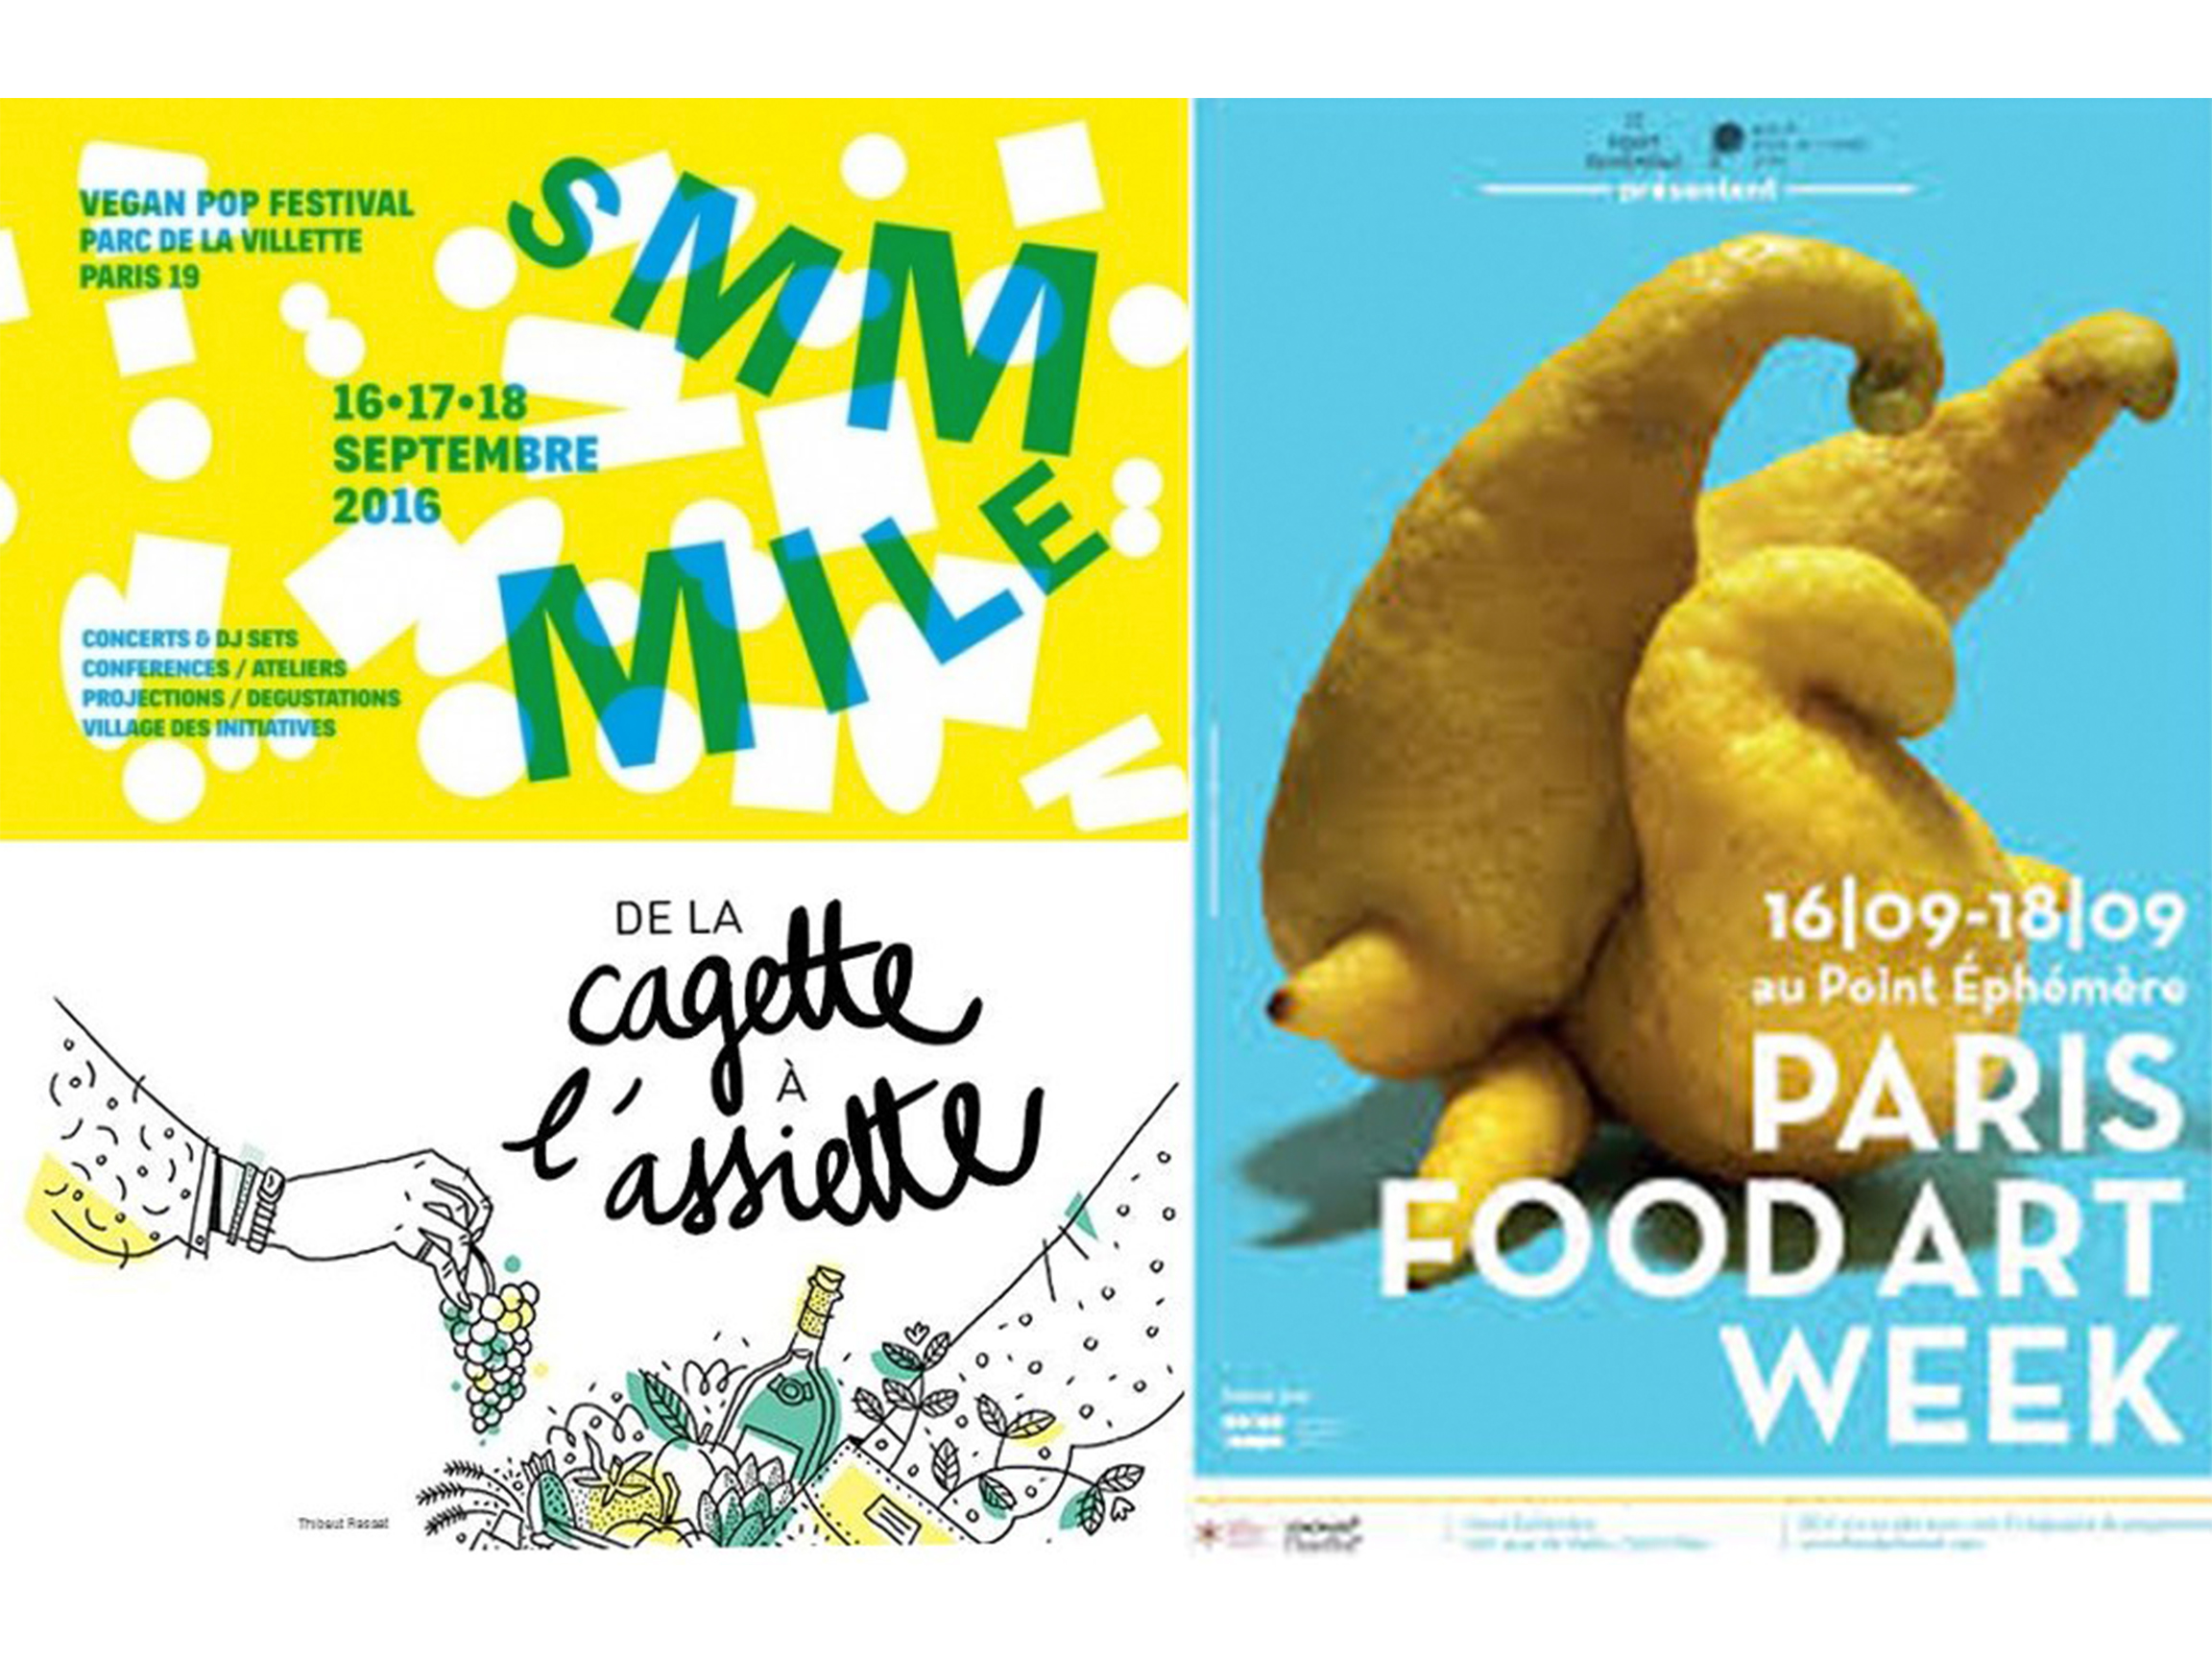 BAM; vegan pop festival; Smmile; de la cadette à l'assiette; paris food art week